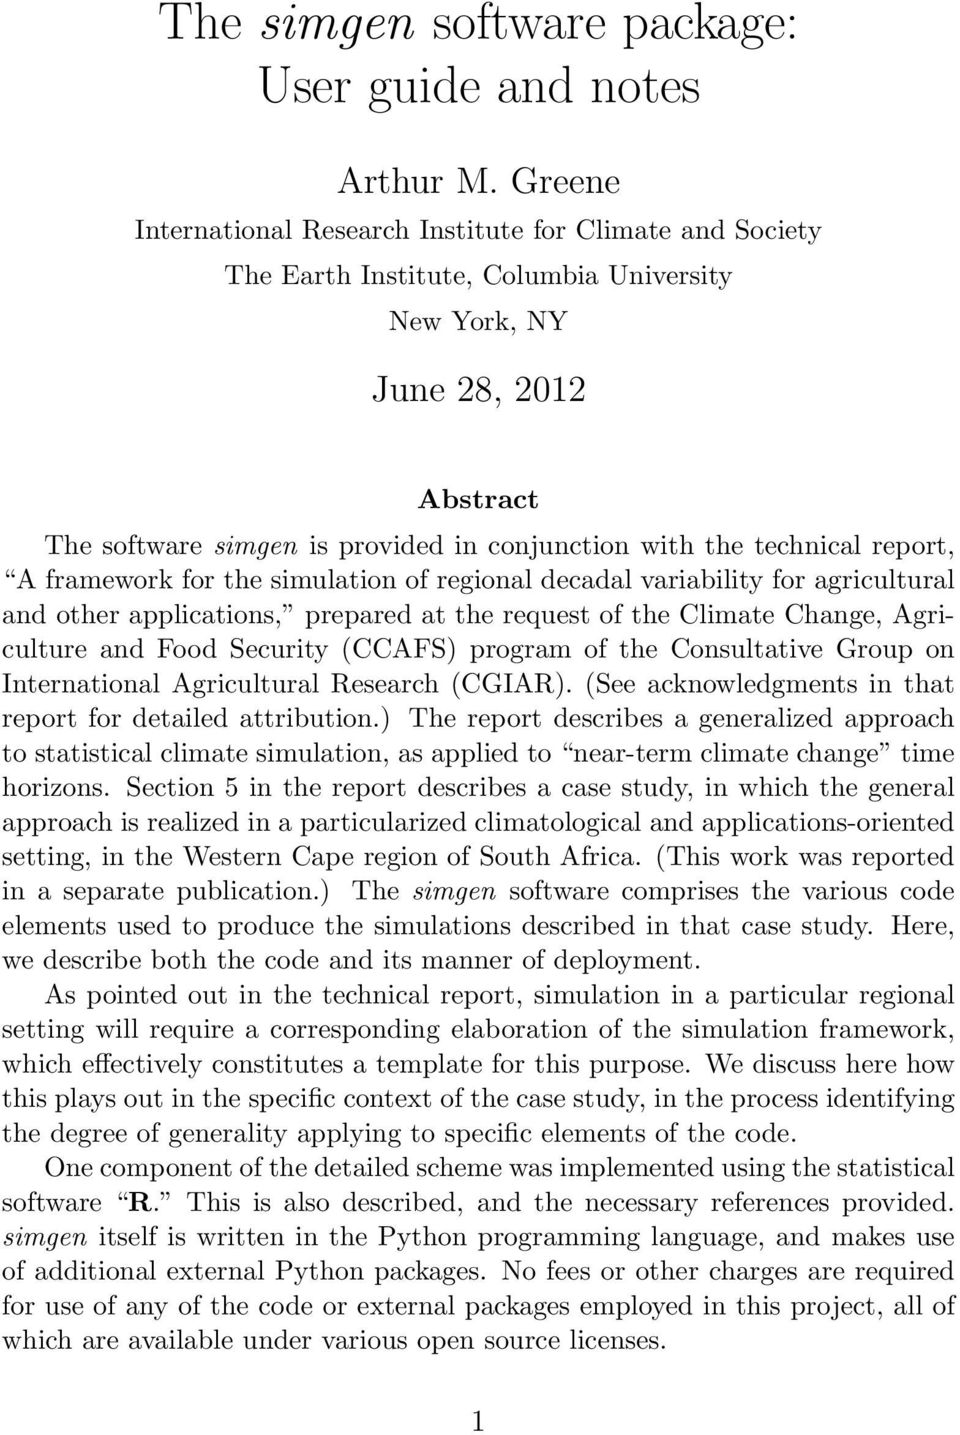 technical report, A framework for the simulation of regional decadal variability for agricultural and other applications, prepared at the request of the Climate Change, Agriculture and Food Security